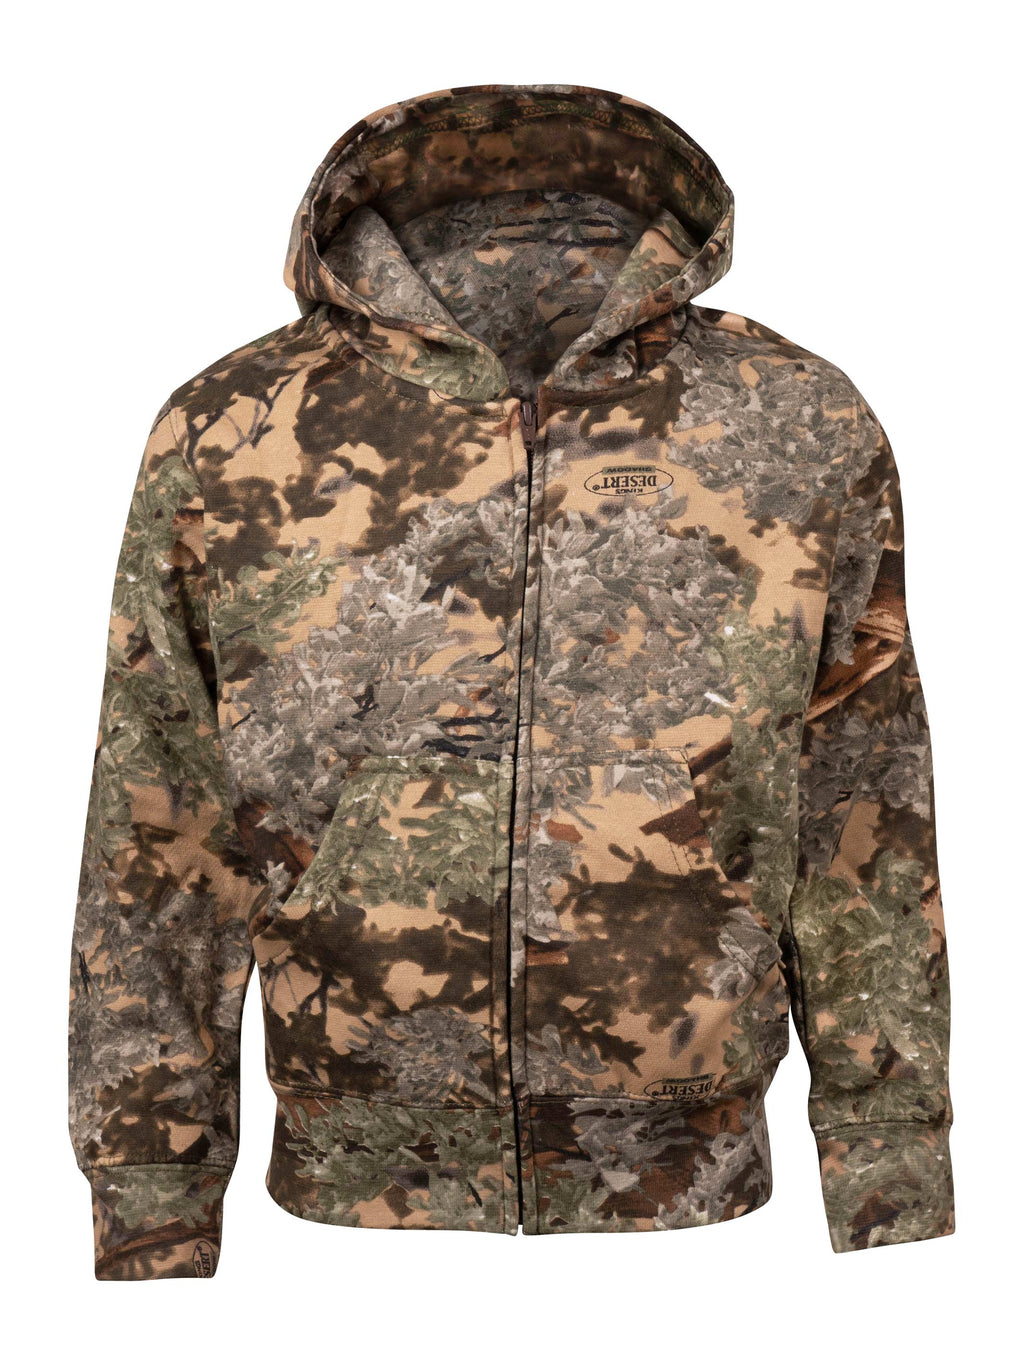 Kids Classic Full-Zip Hoodie in Desert Shadow | King's Camo